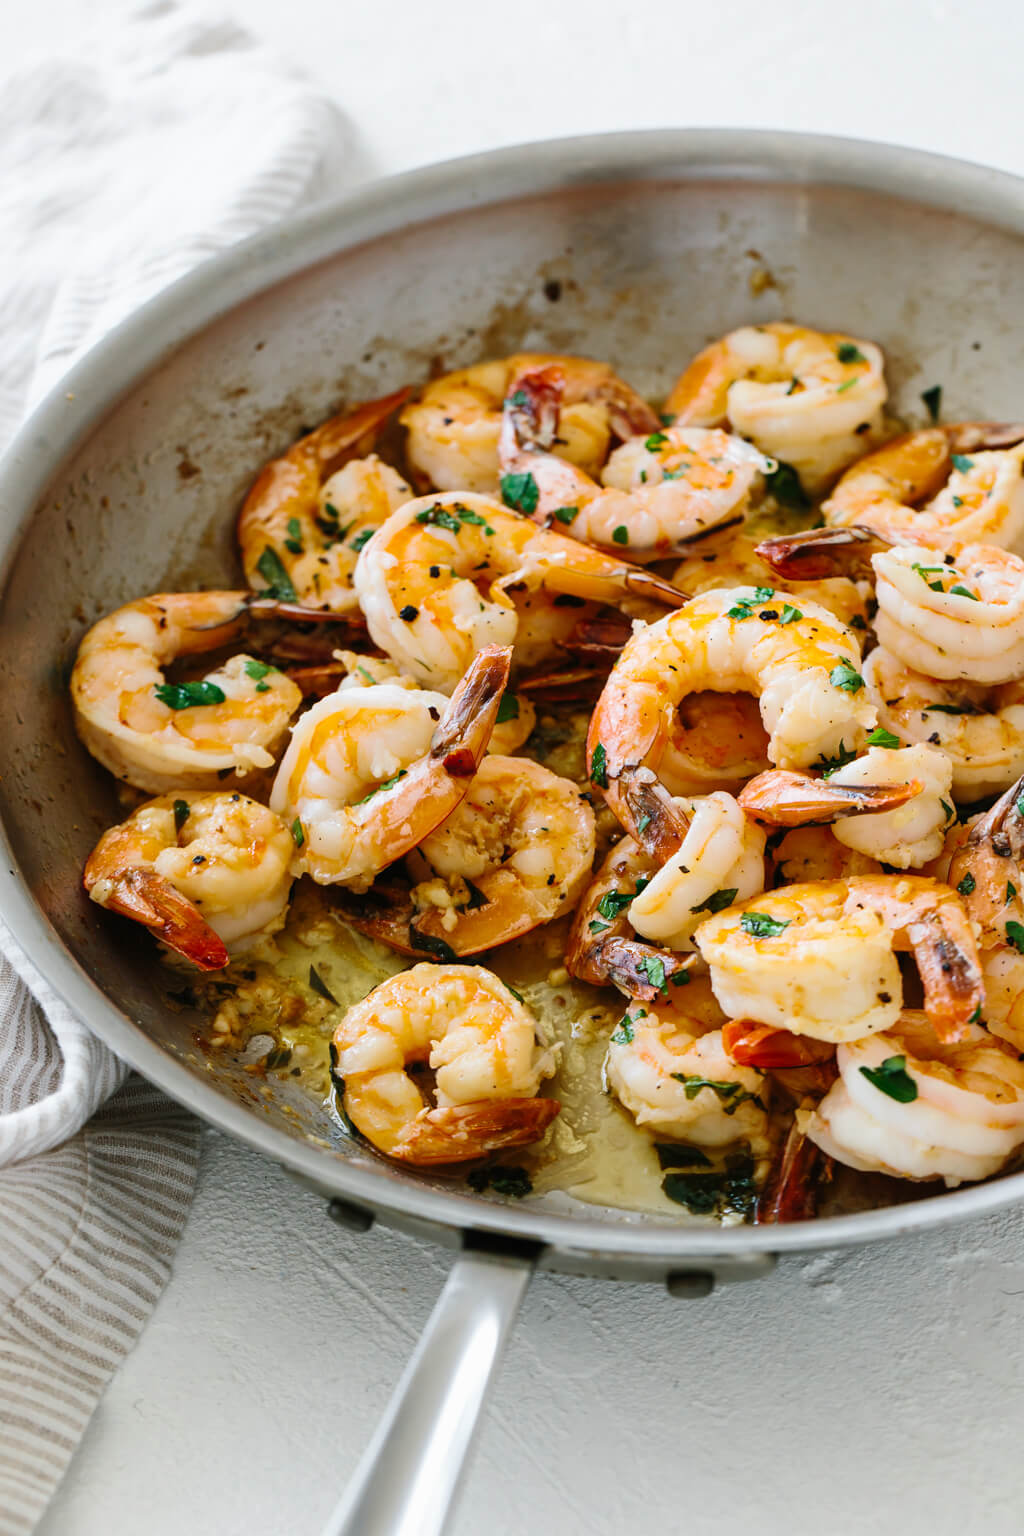 Shrimp sauteed in garlic and butter in a pan.